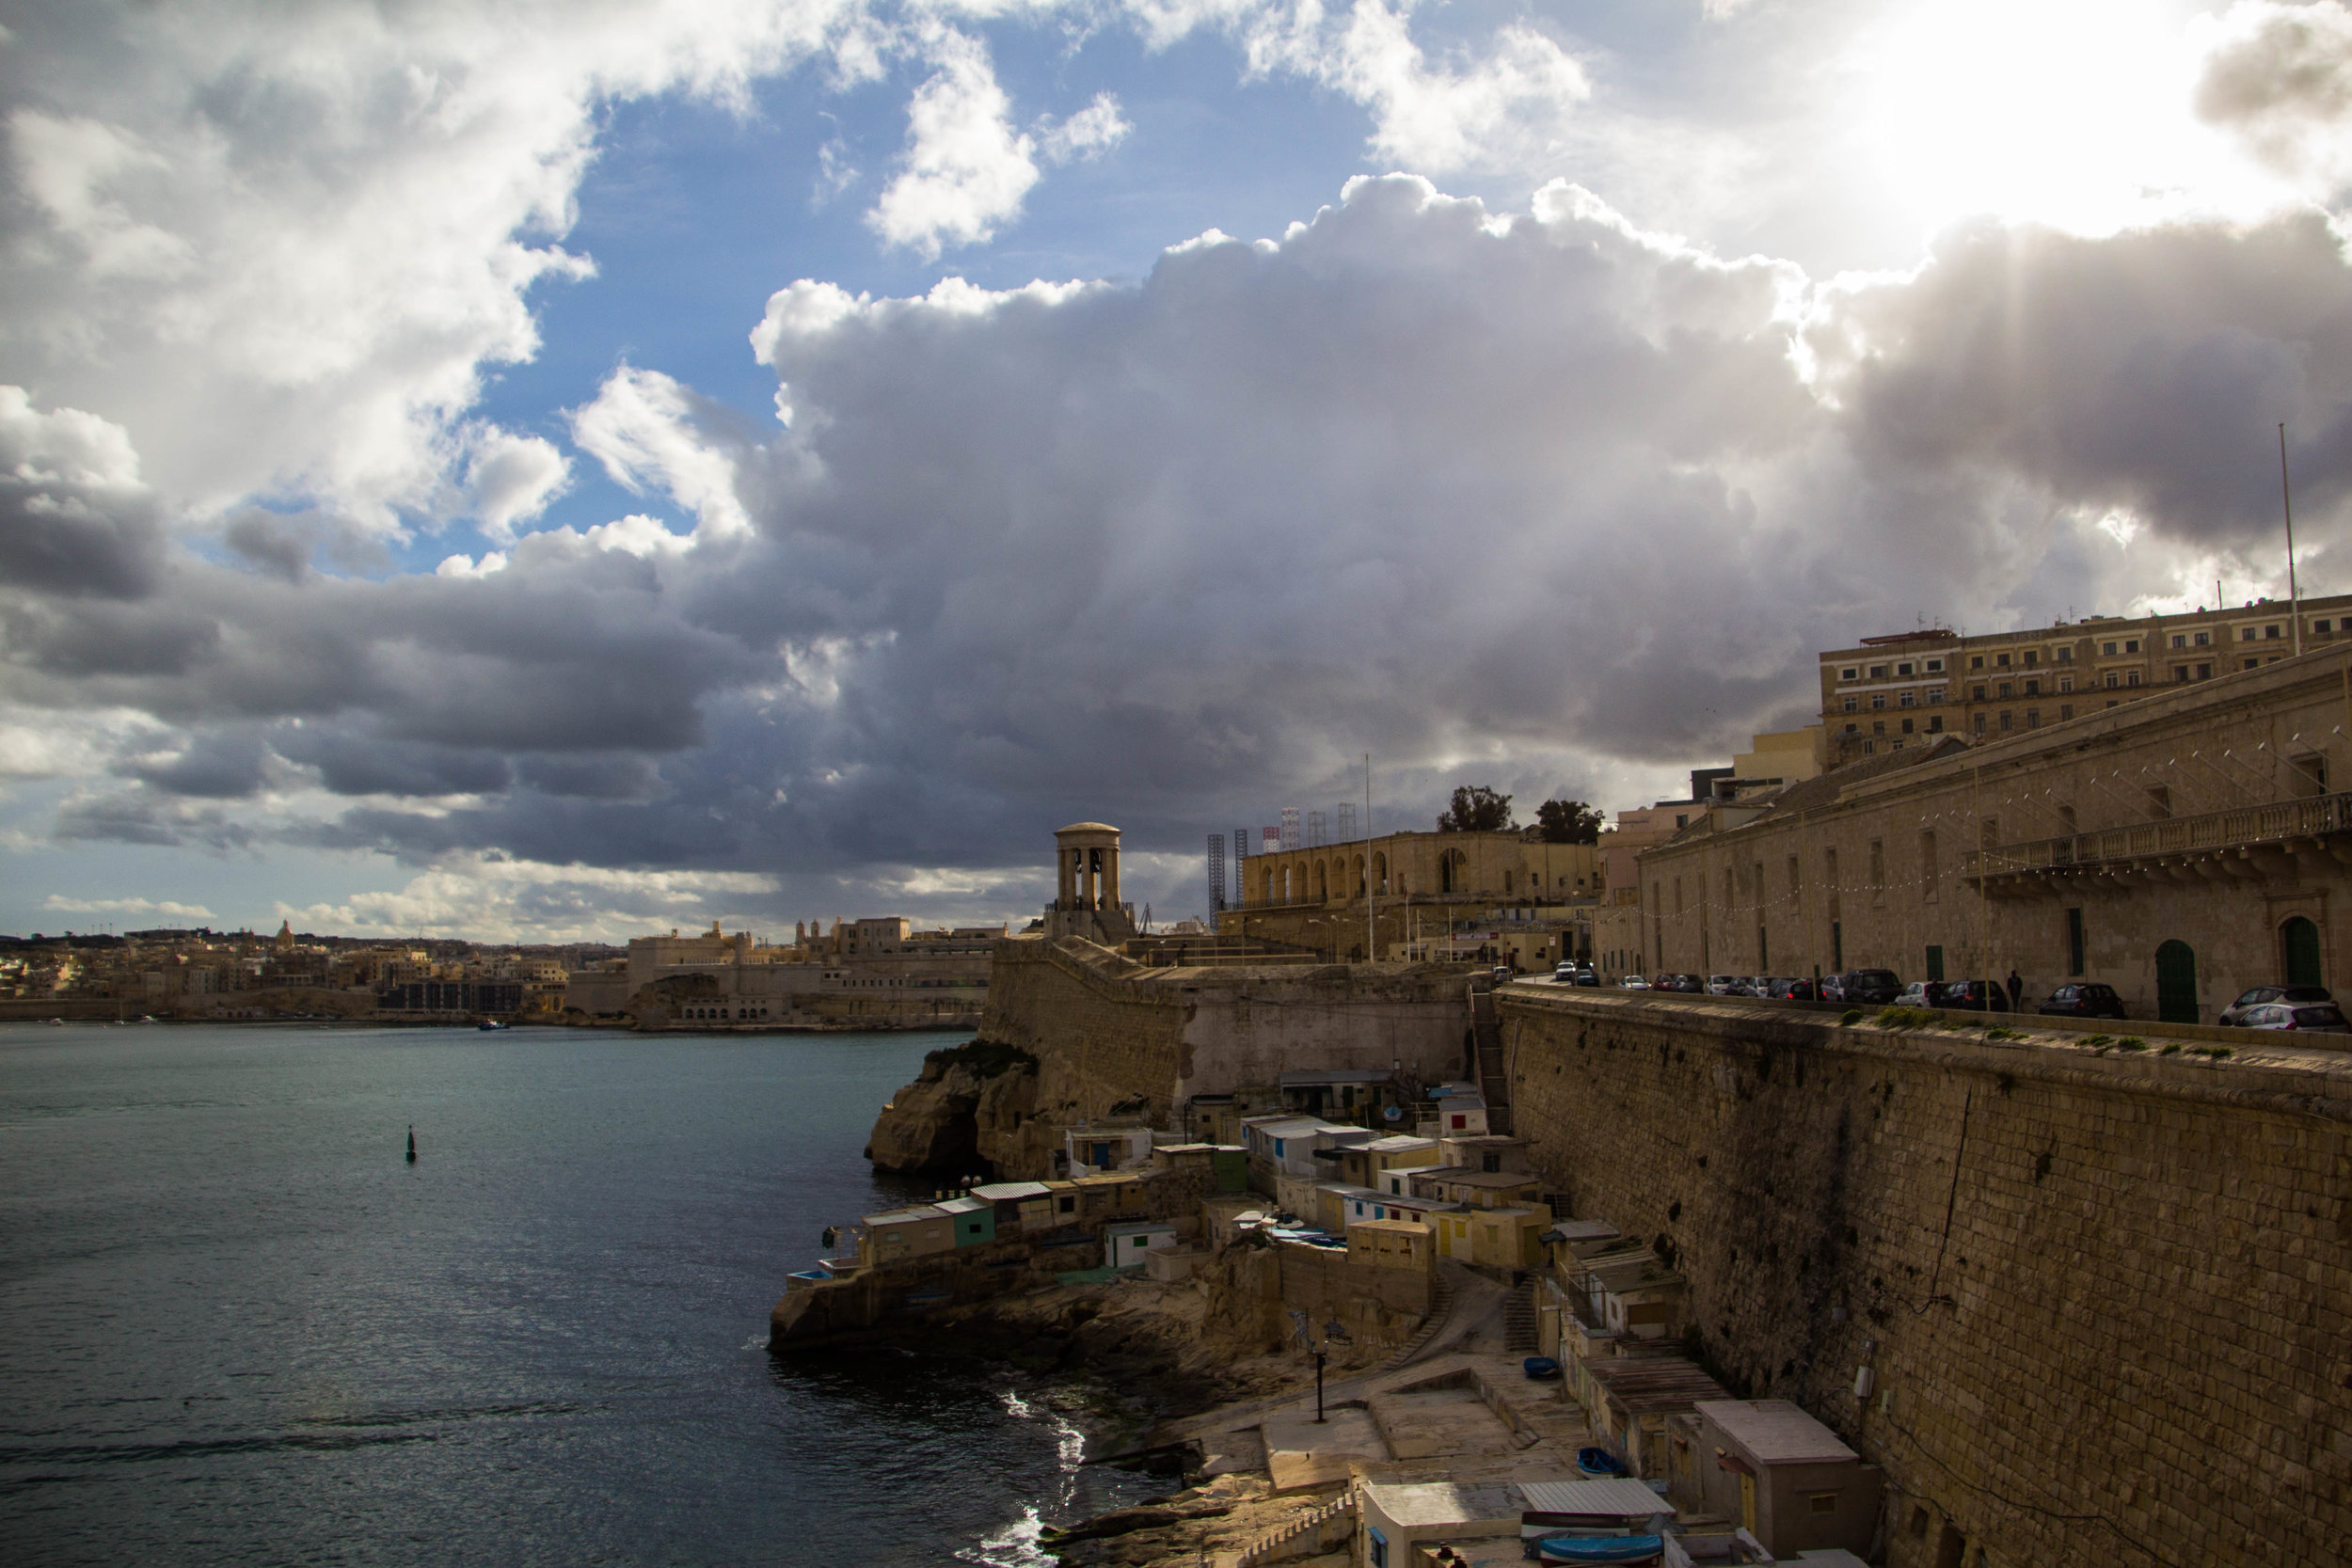 valletta-malta-clouds-rain-streets-photography-32.jpg